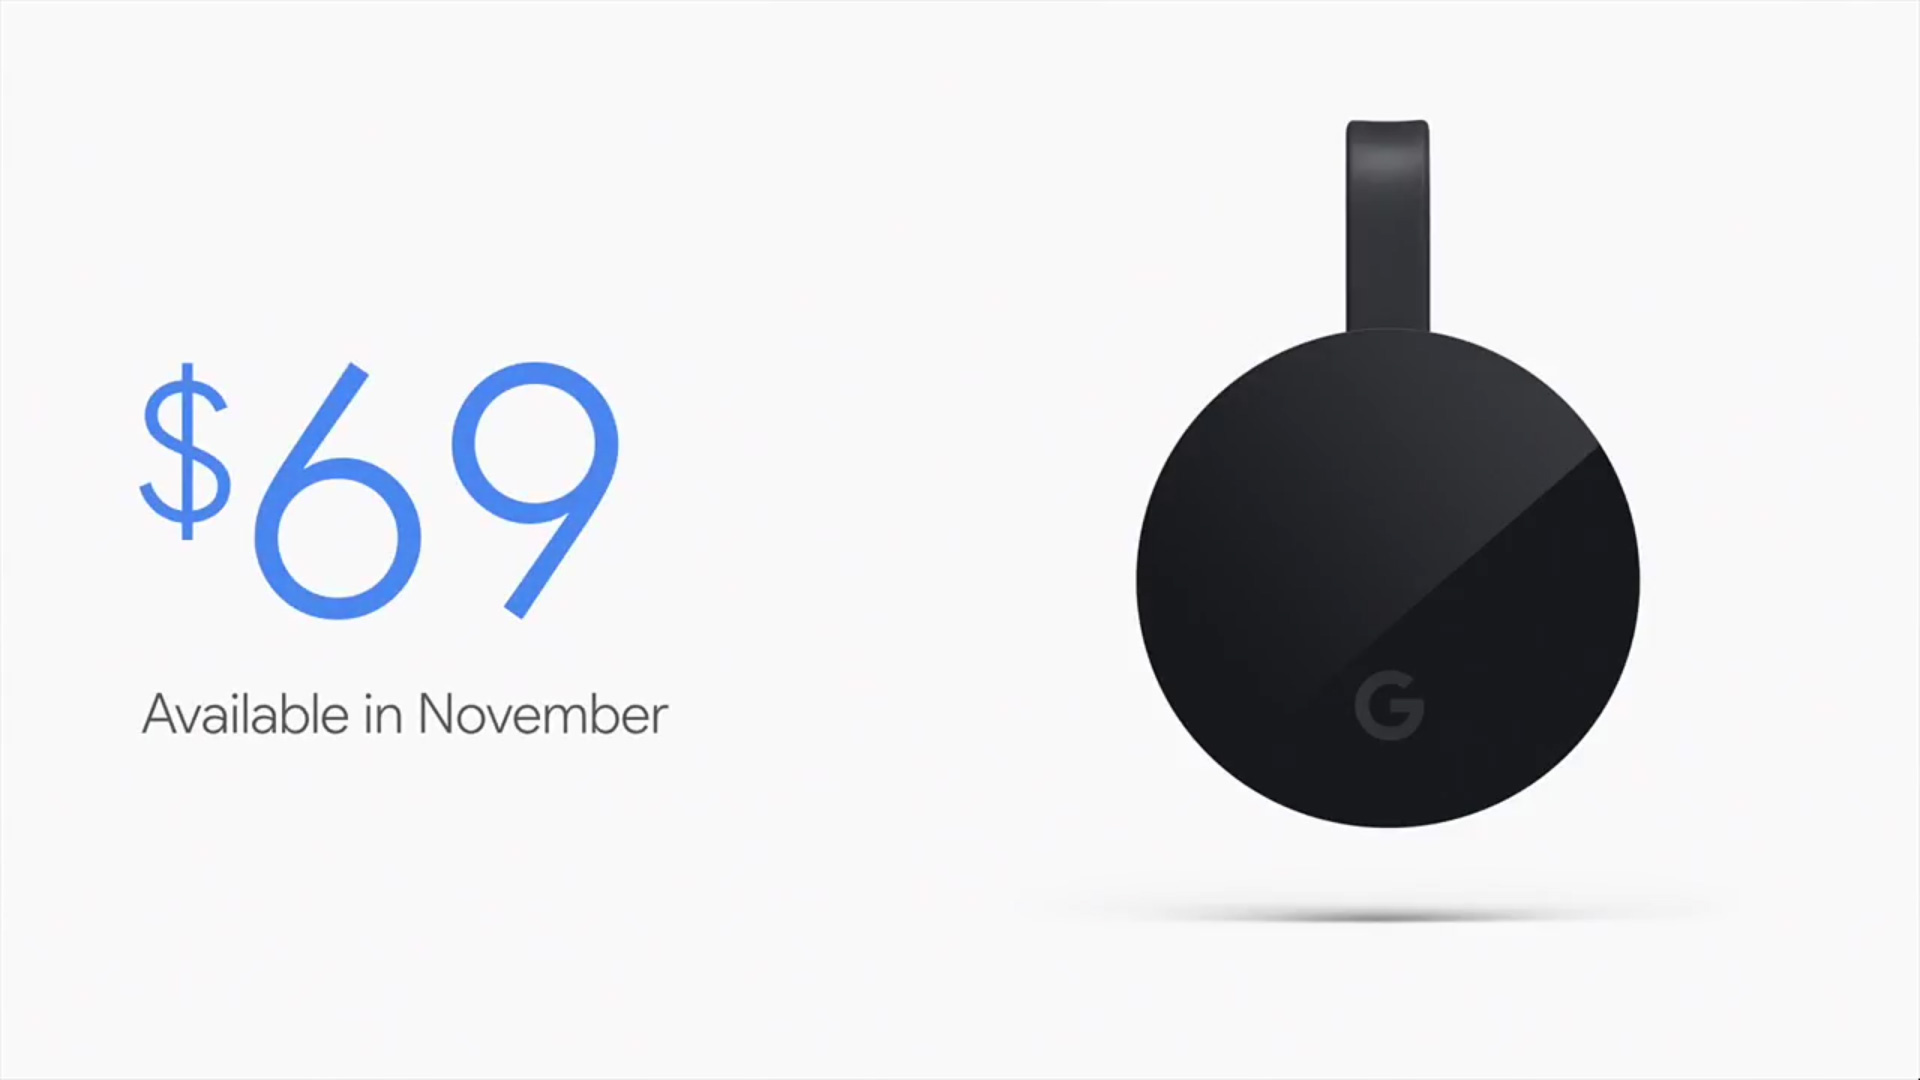 Google Announces Chromecast Ultra: 4K & HDR for Chromecast